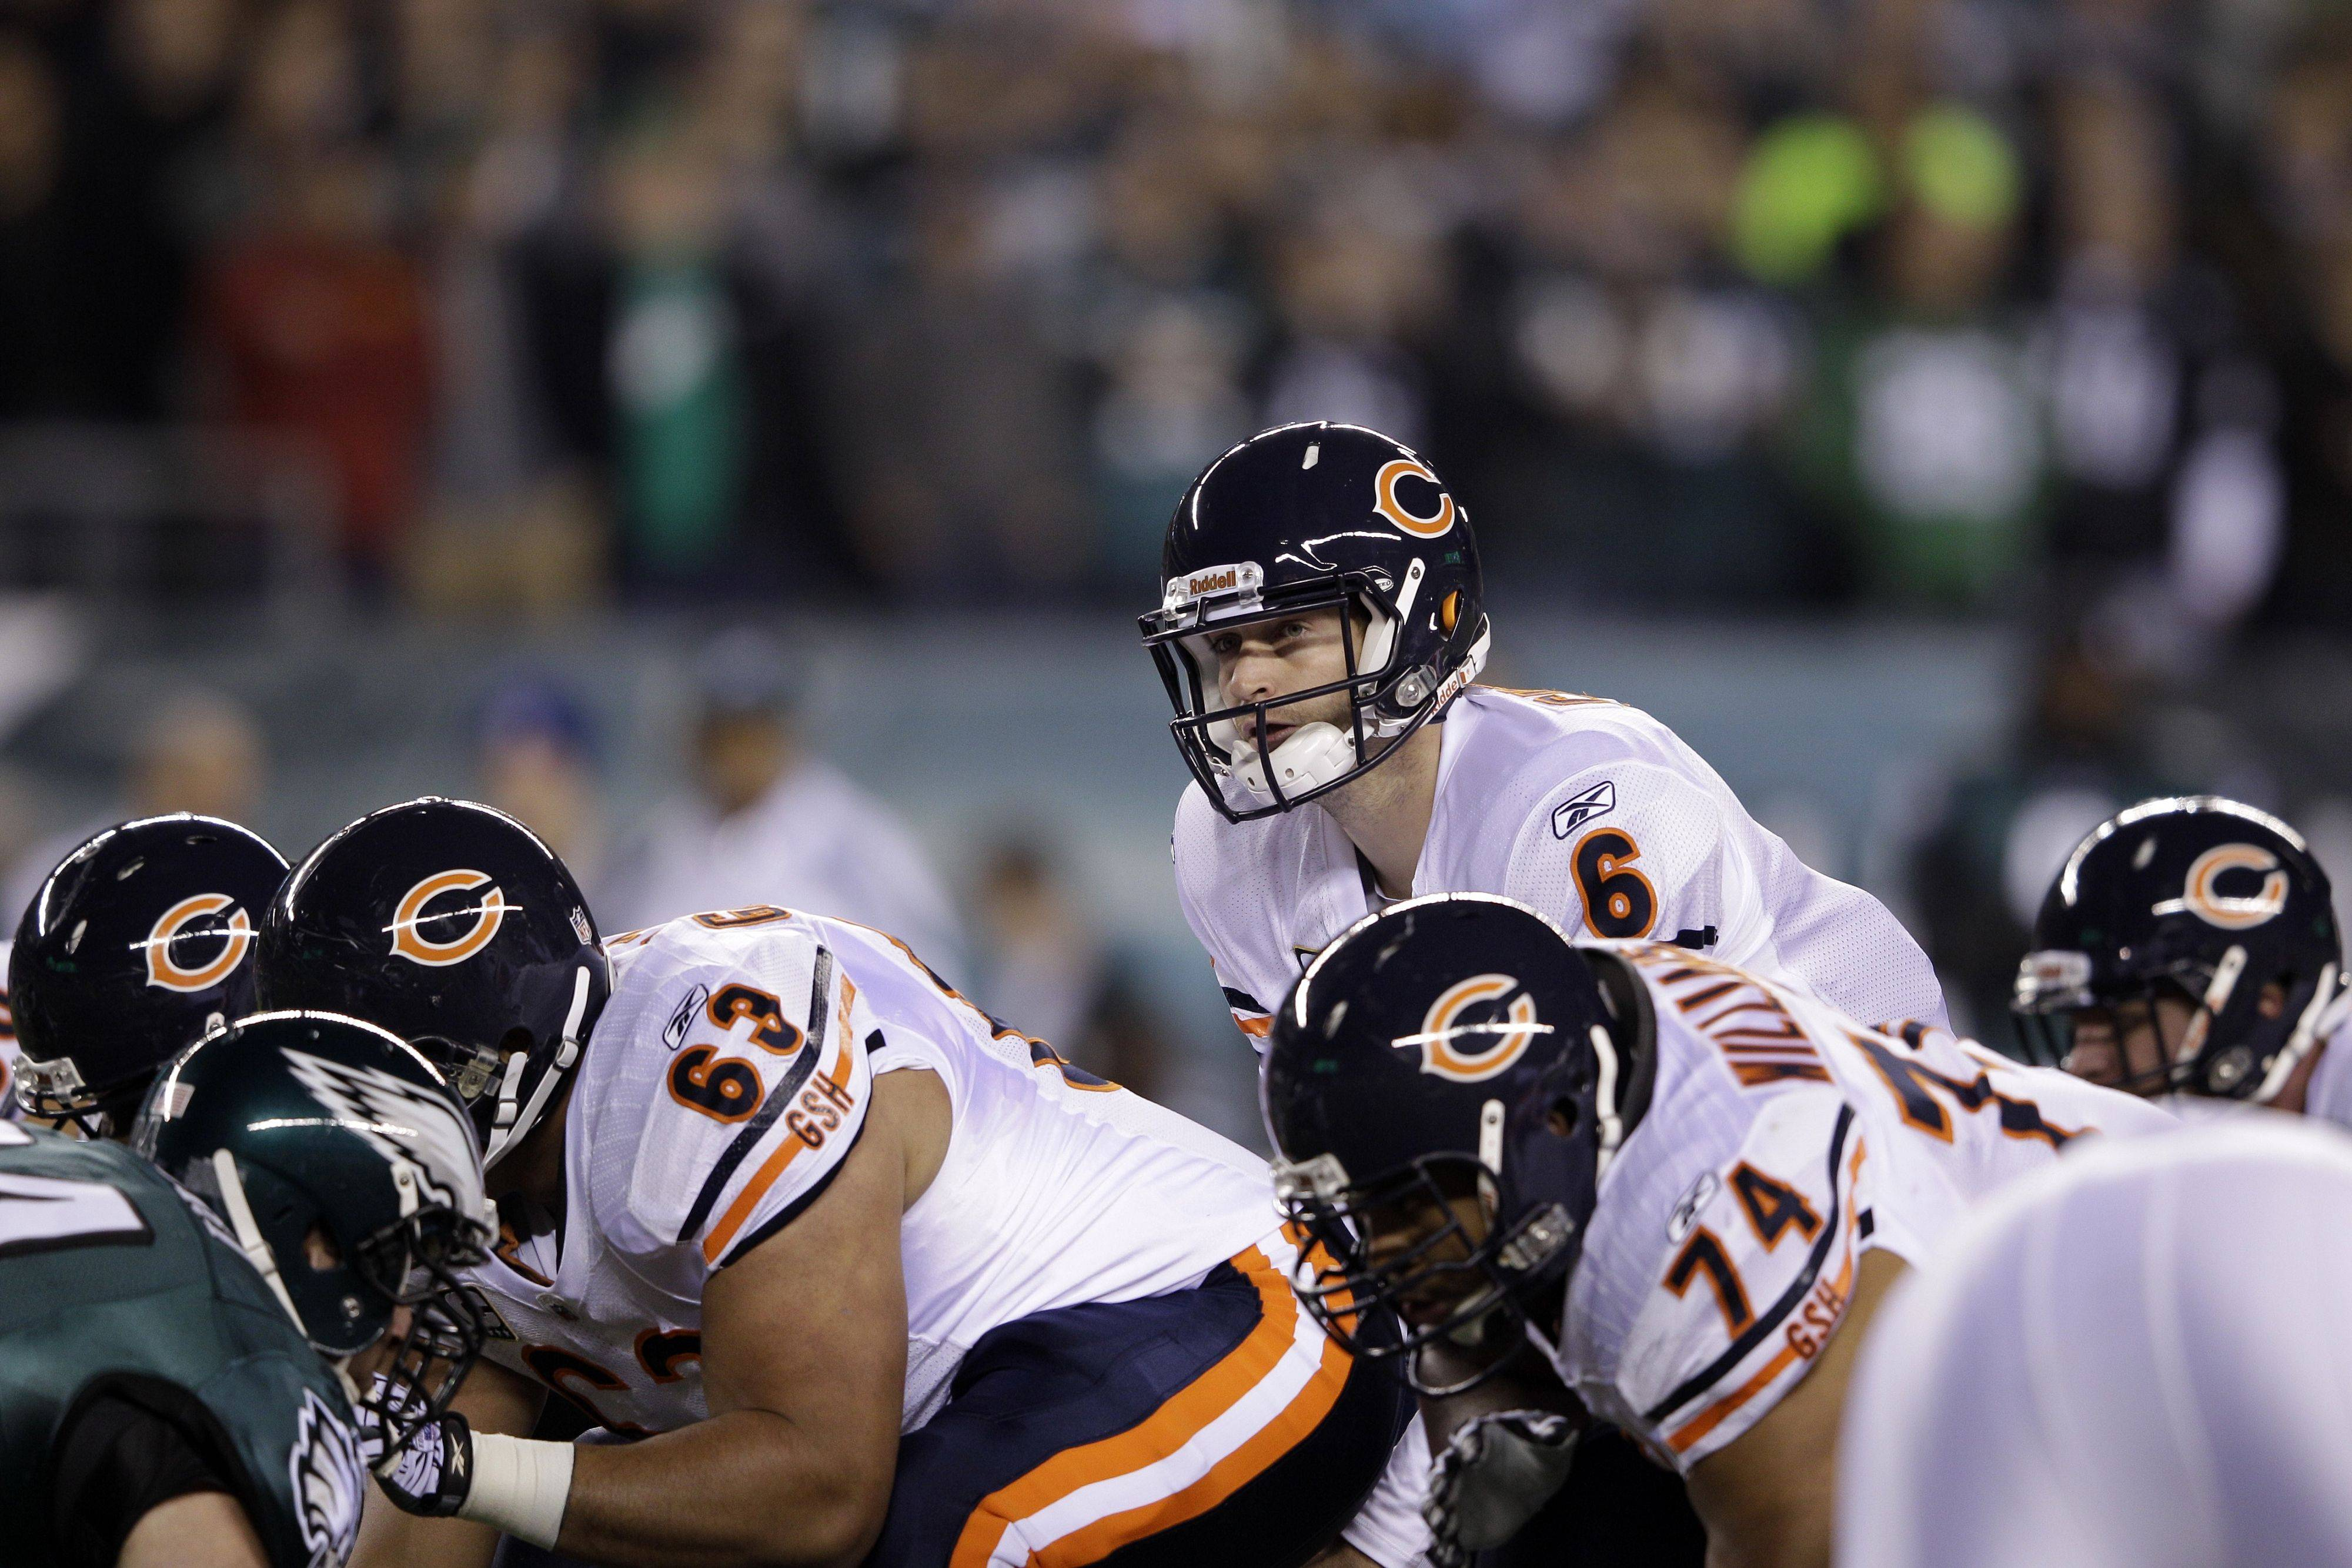 Bears reward Garza with contract extension